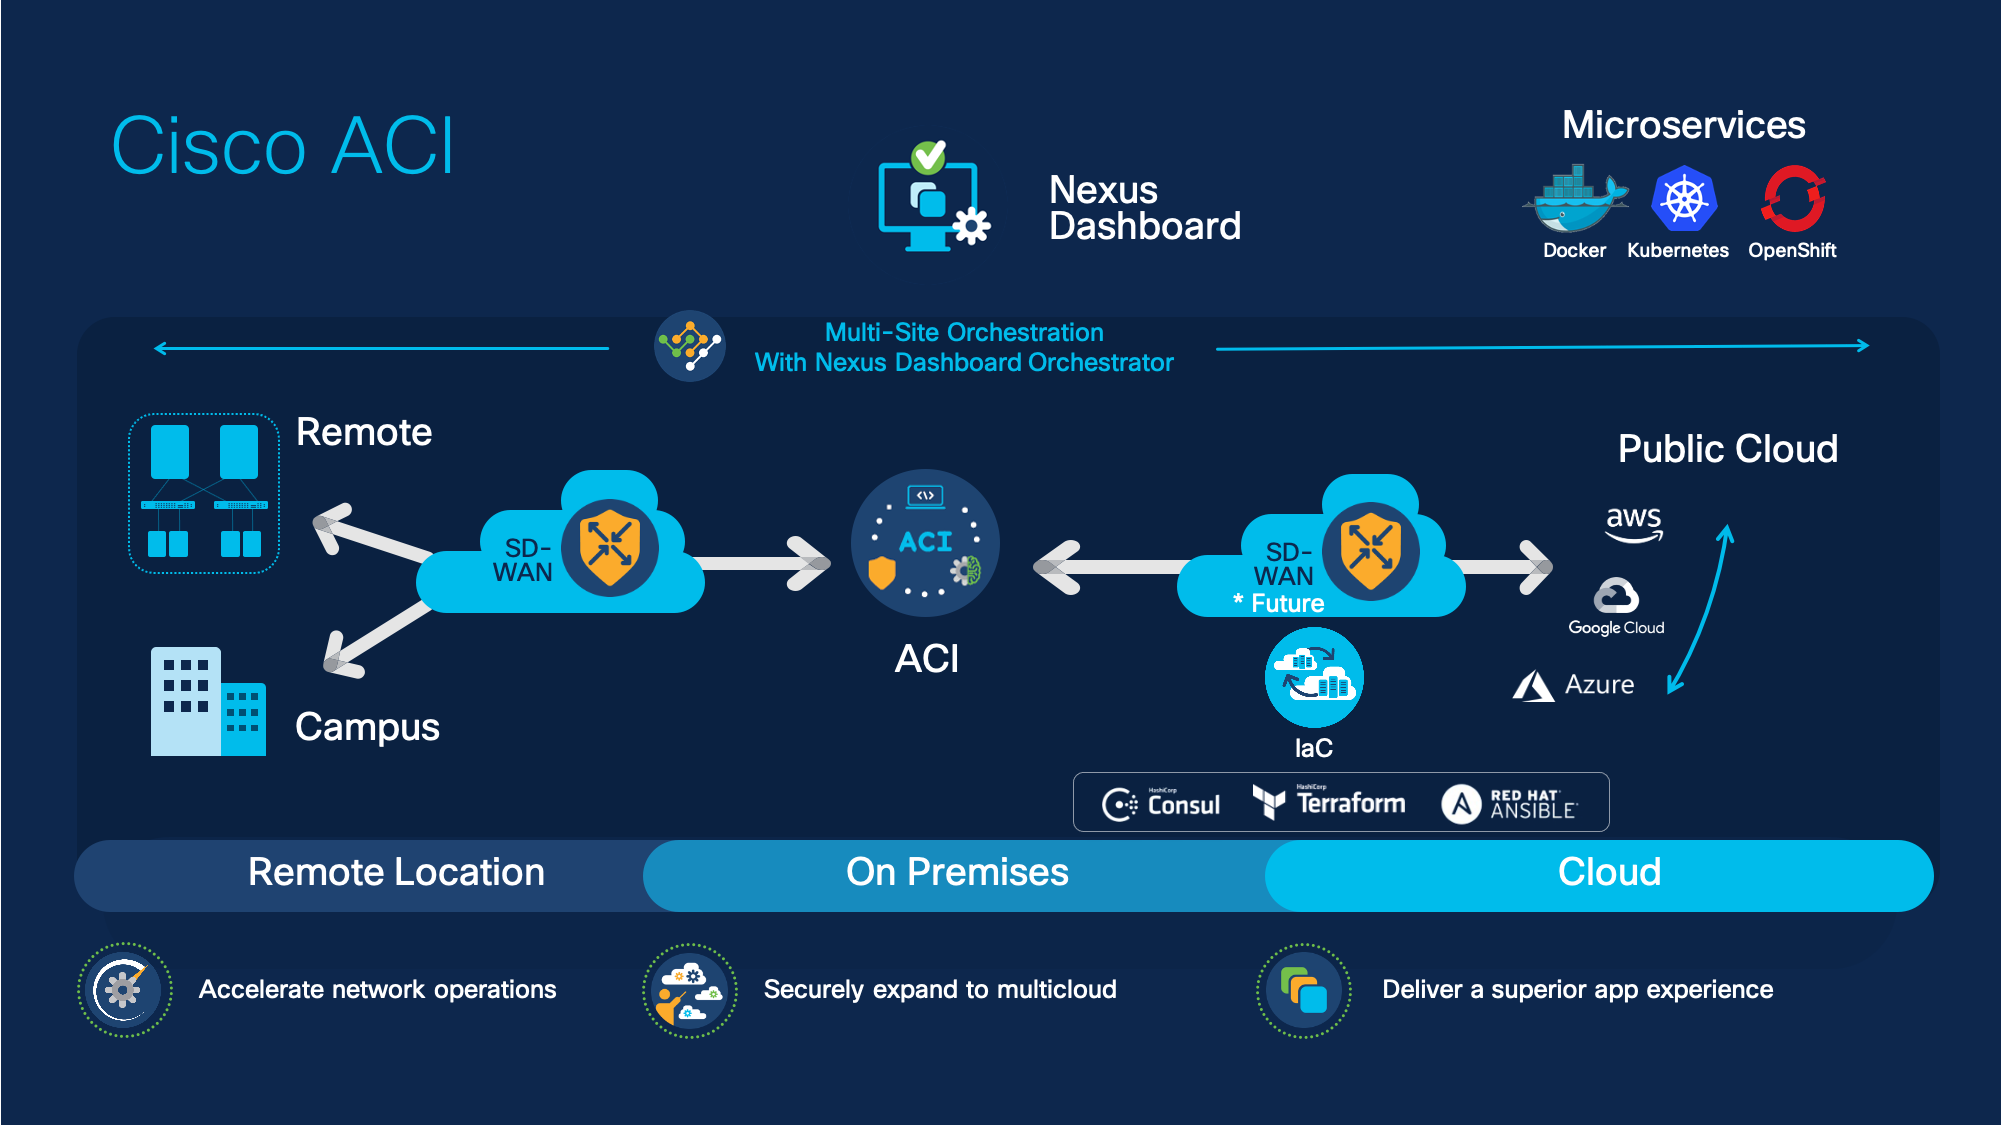 Cisco ACI 5.2 is here now. Your hybrid cloud environment with new features simplify.